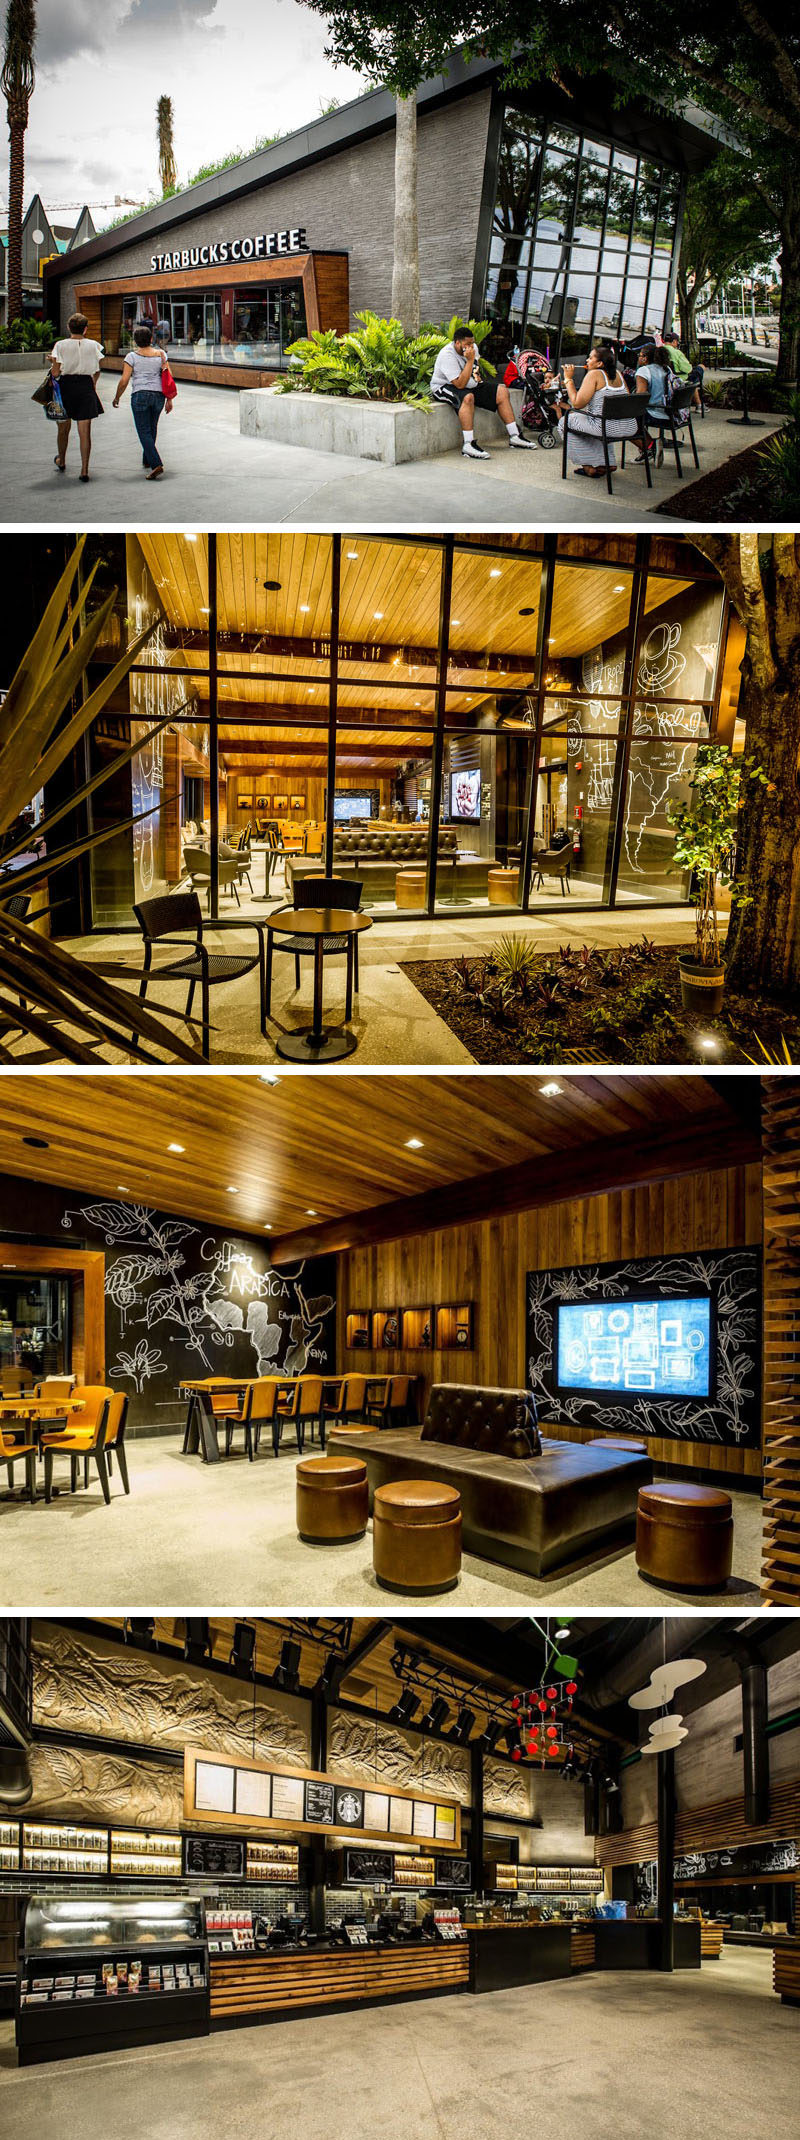 11 Starbucks Coffee Shops From Around The World // This Starbucks location in Downtown Disney at Orlando, Florida, has lemongrass growing on the sloped roof, while large windows allow people walking past to see into the interior that has wooden tables and chairs and comfy leather couches.